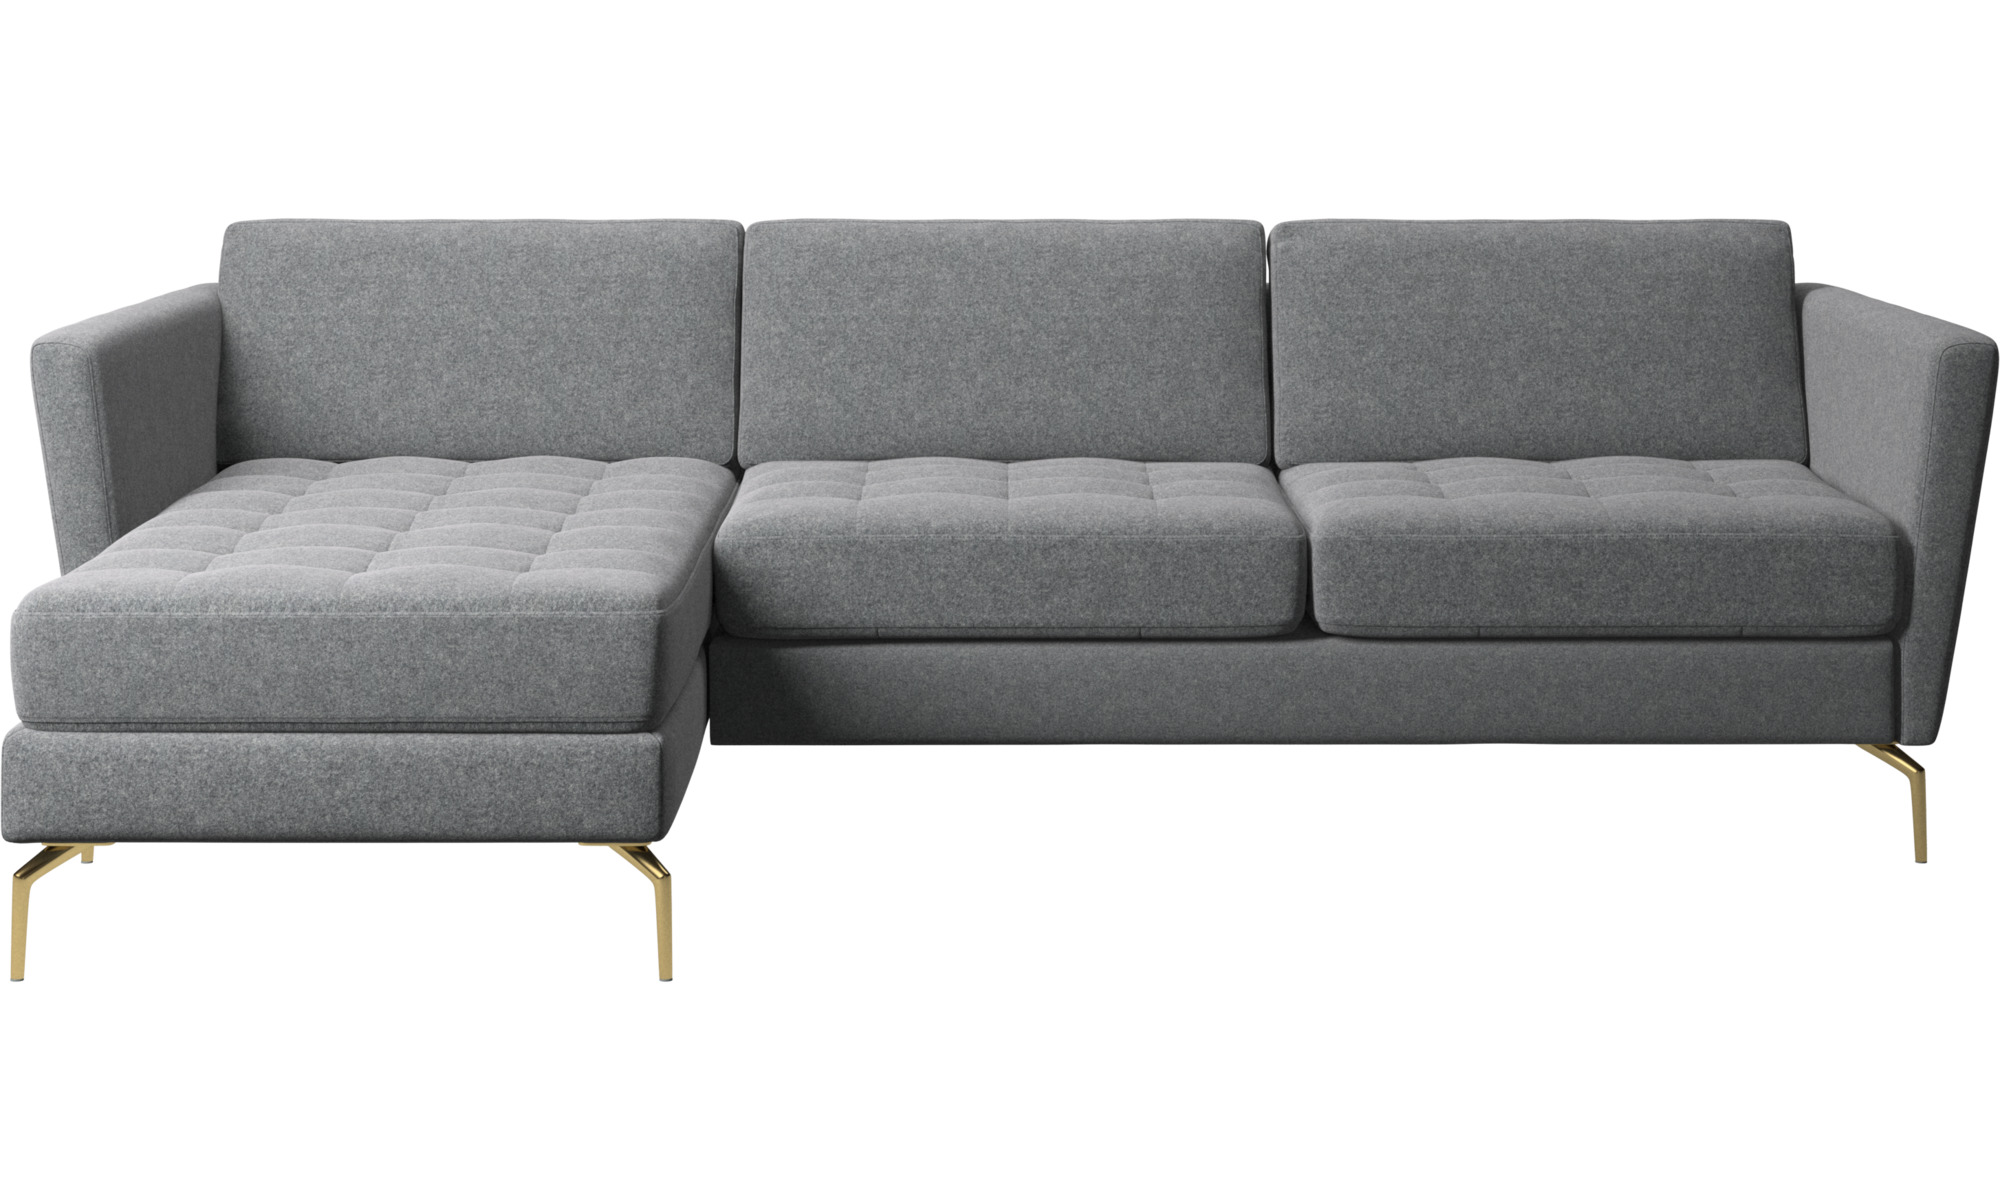 Chaise Lounge Sofas Osaka Sofa With Resting Unit Tufted Seat Boconcept